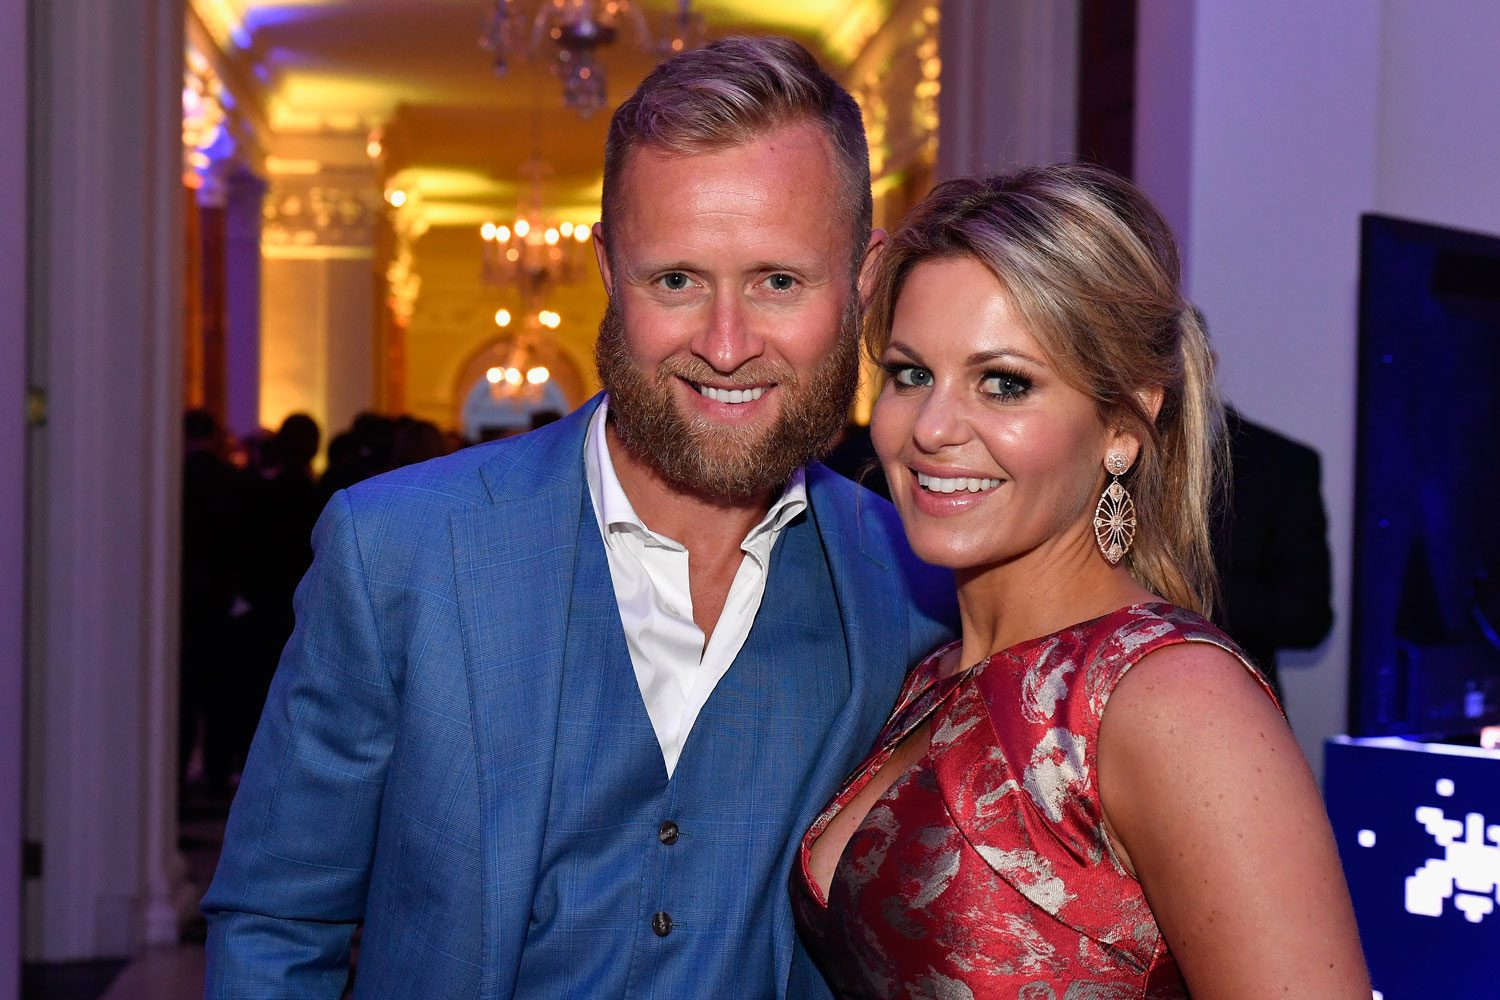 Candace Cameron Bure And Her Husband >> Candace Cameron Bure on the Secrets to Her 22-Year Marriage